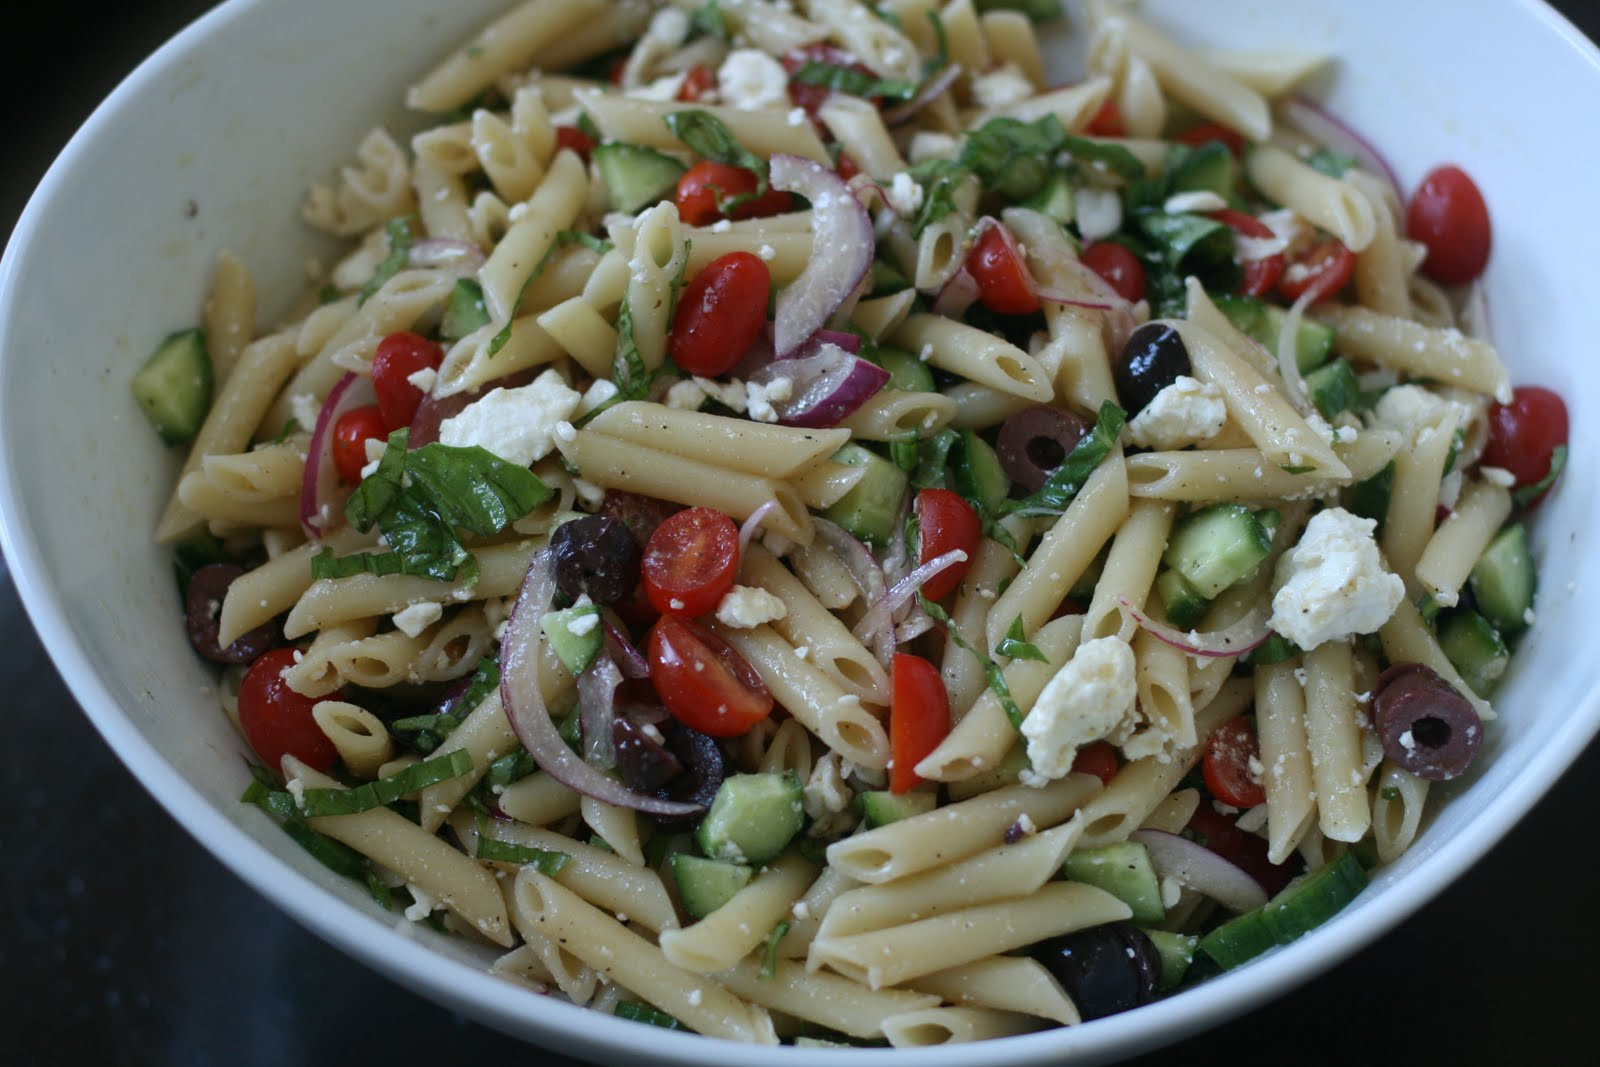 Greek Pasta Salad  Week of Menus Greek Pasta Salad Questioning choices